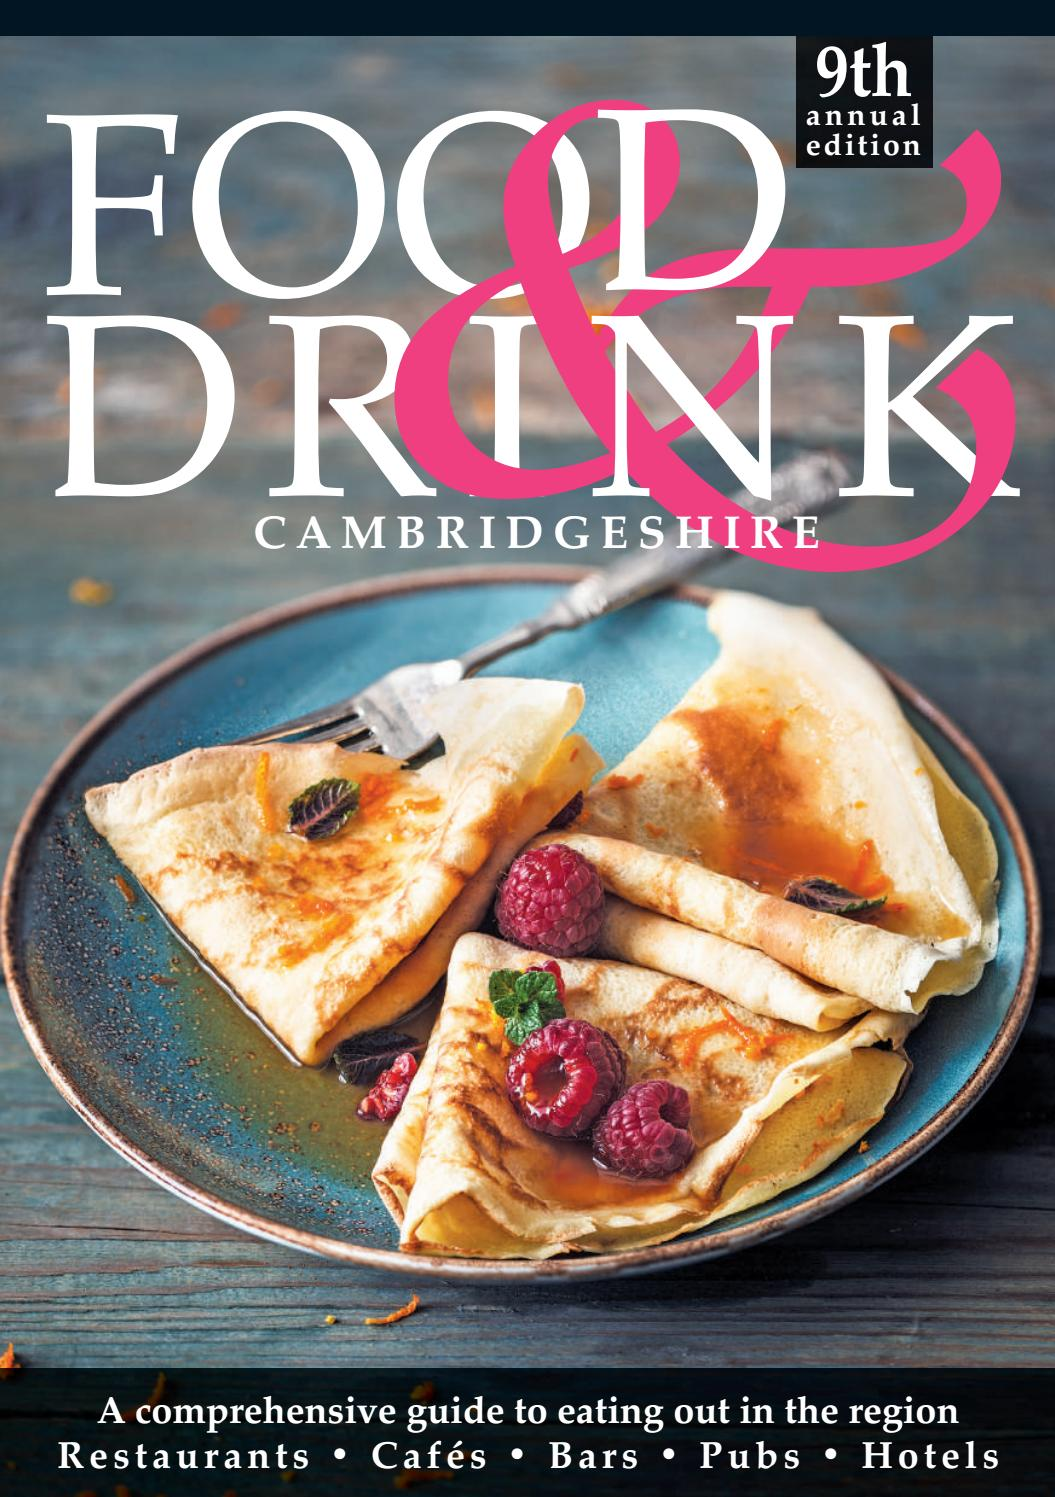 Cambridgeshire Food Drink Guide 2019 By Food Drink